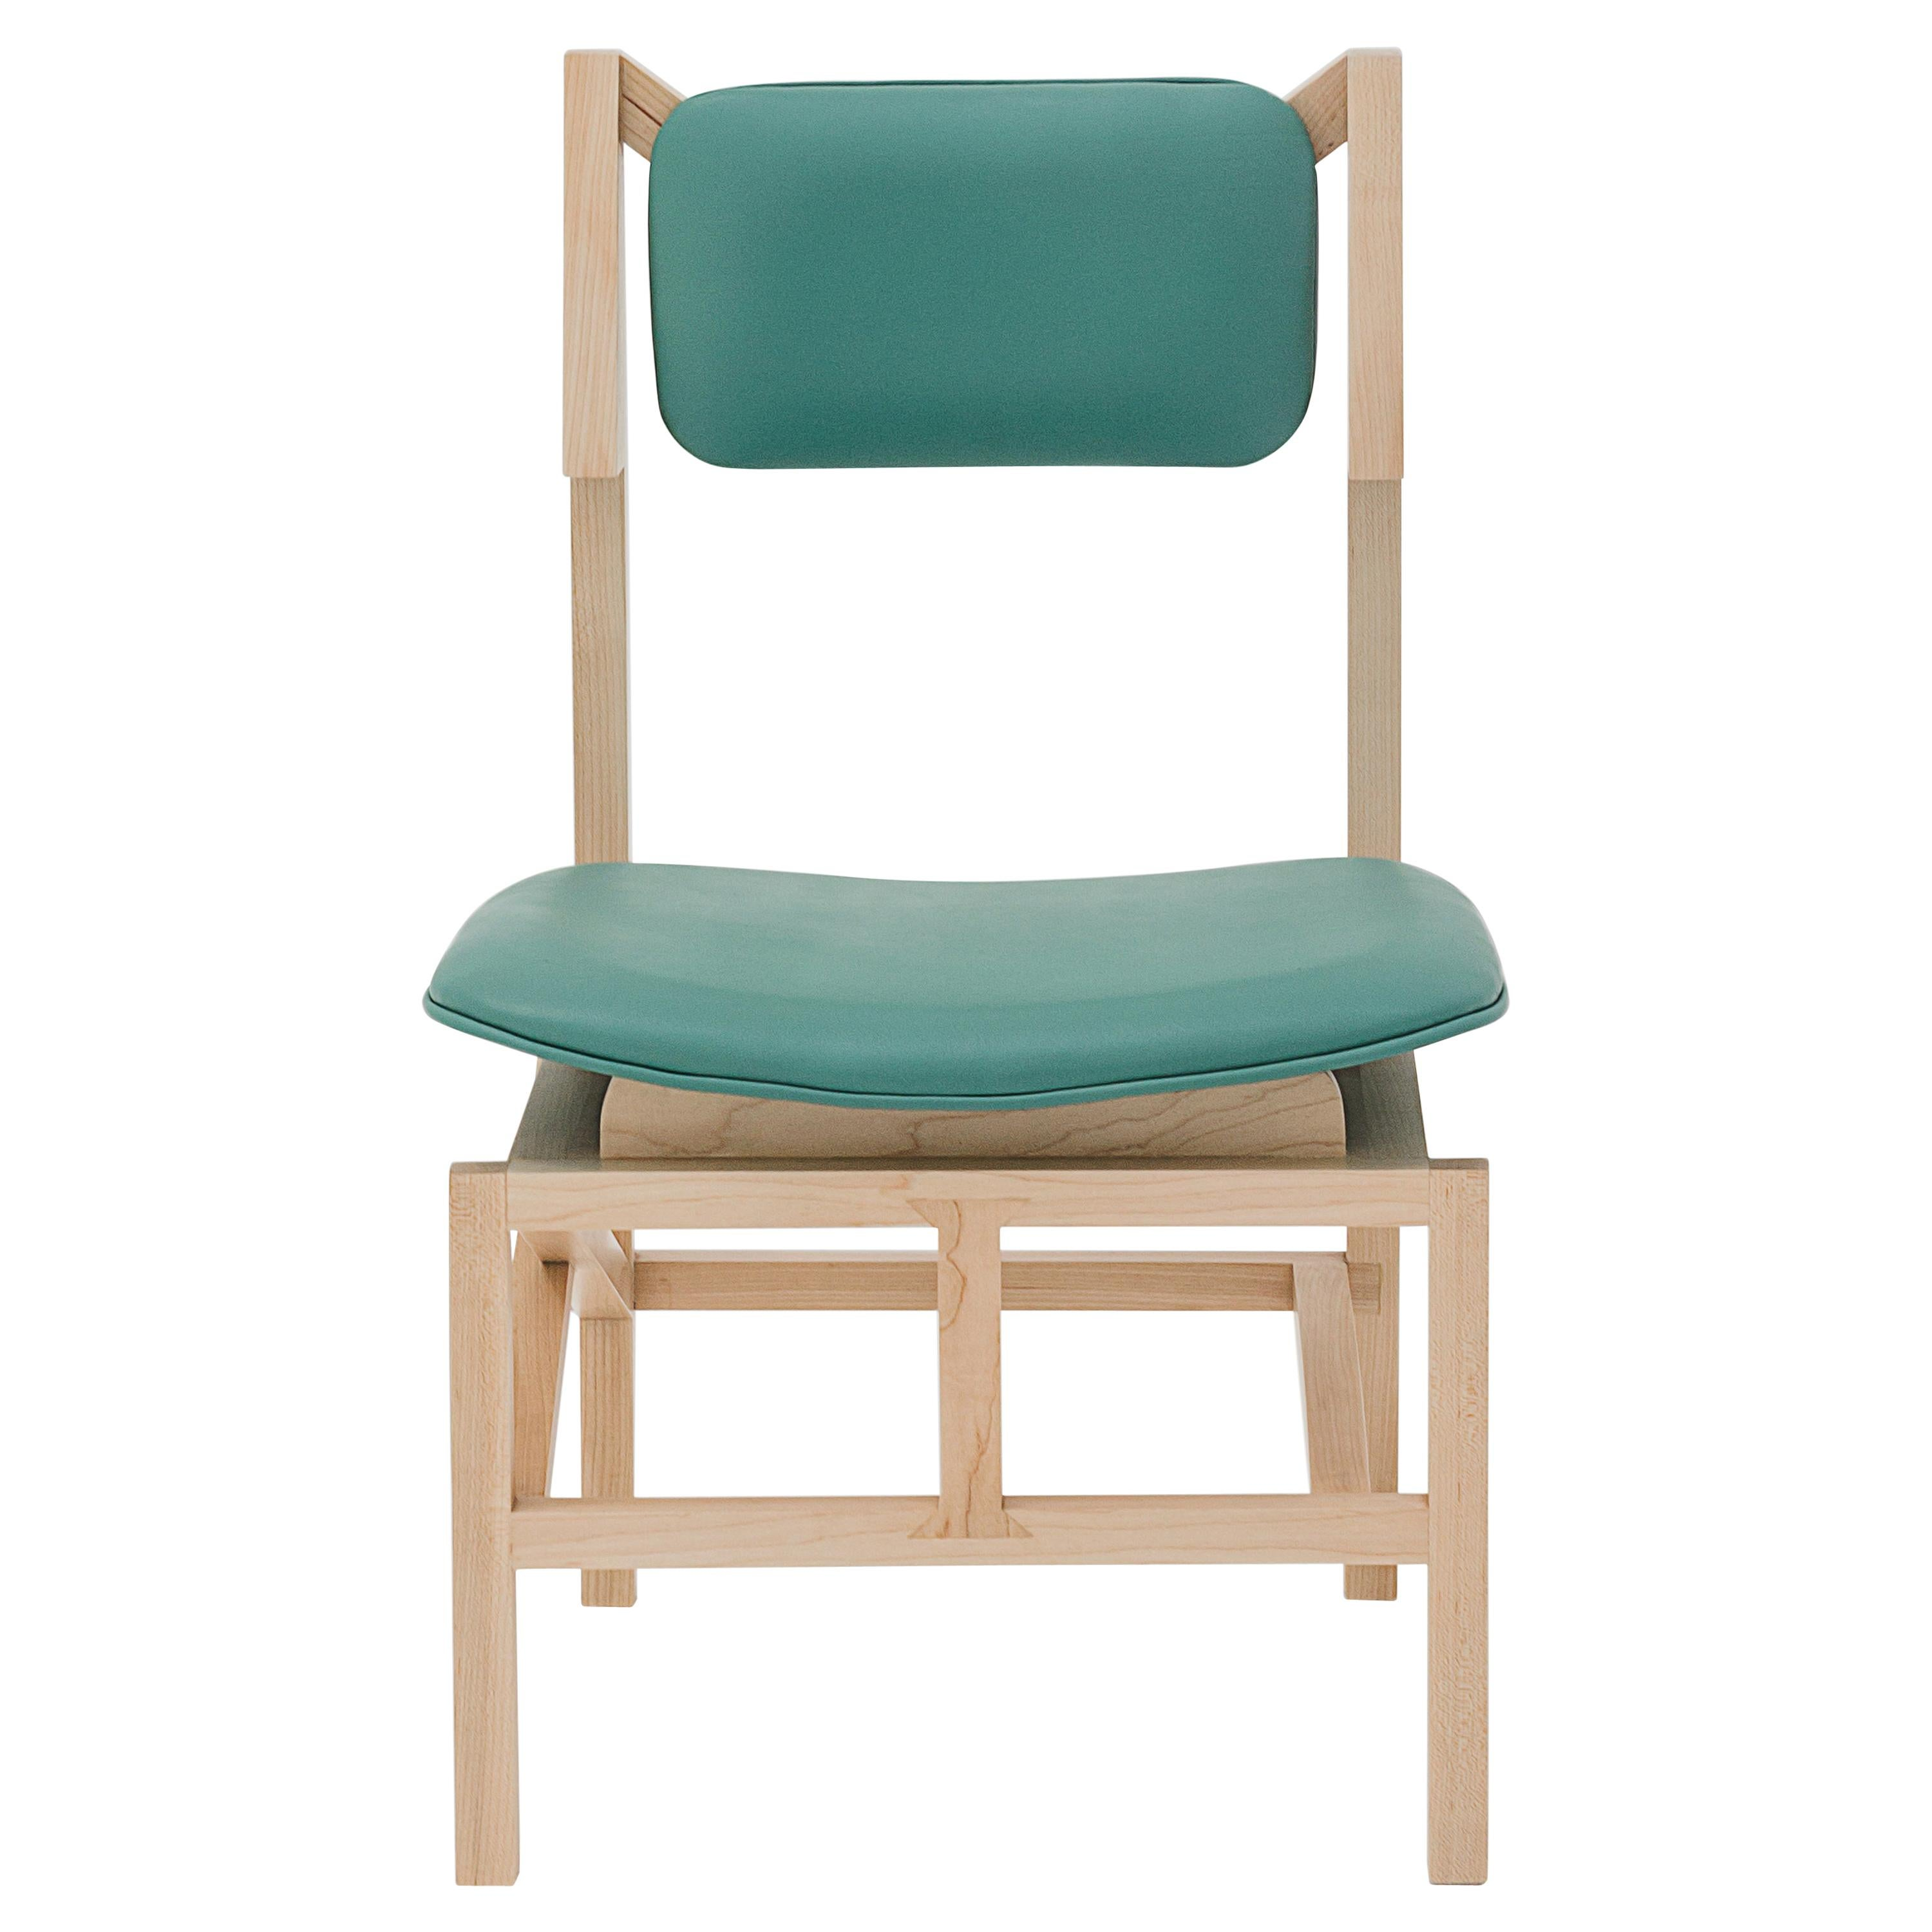 Silla México Maple Dining Chair with Green Leather Upholstered Seats